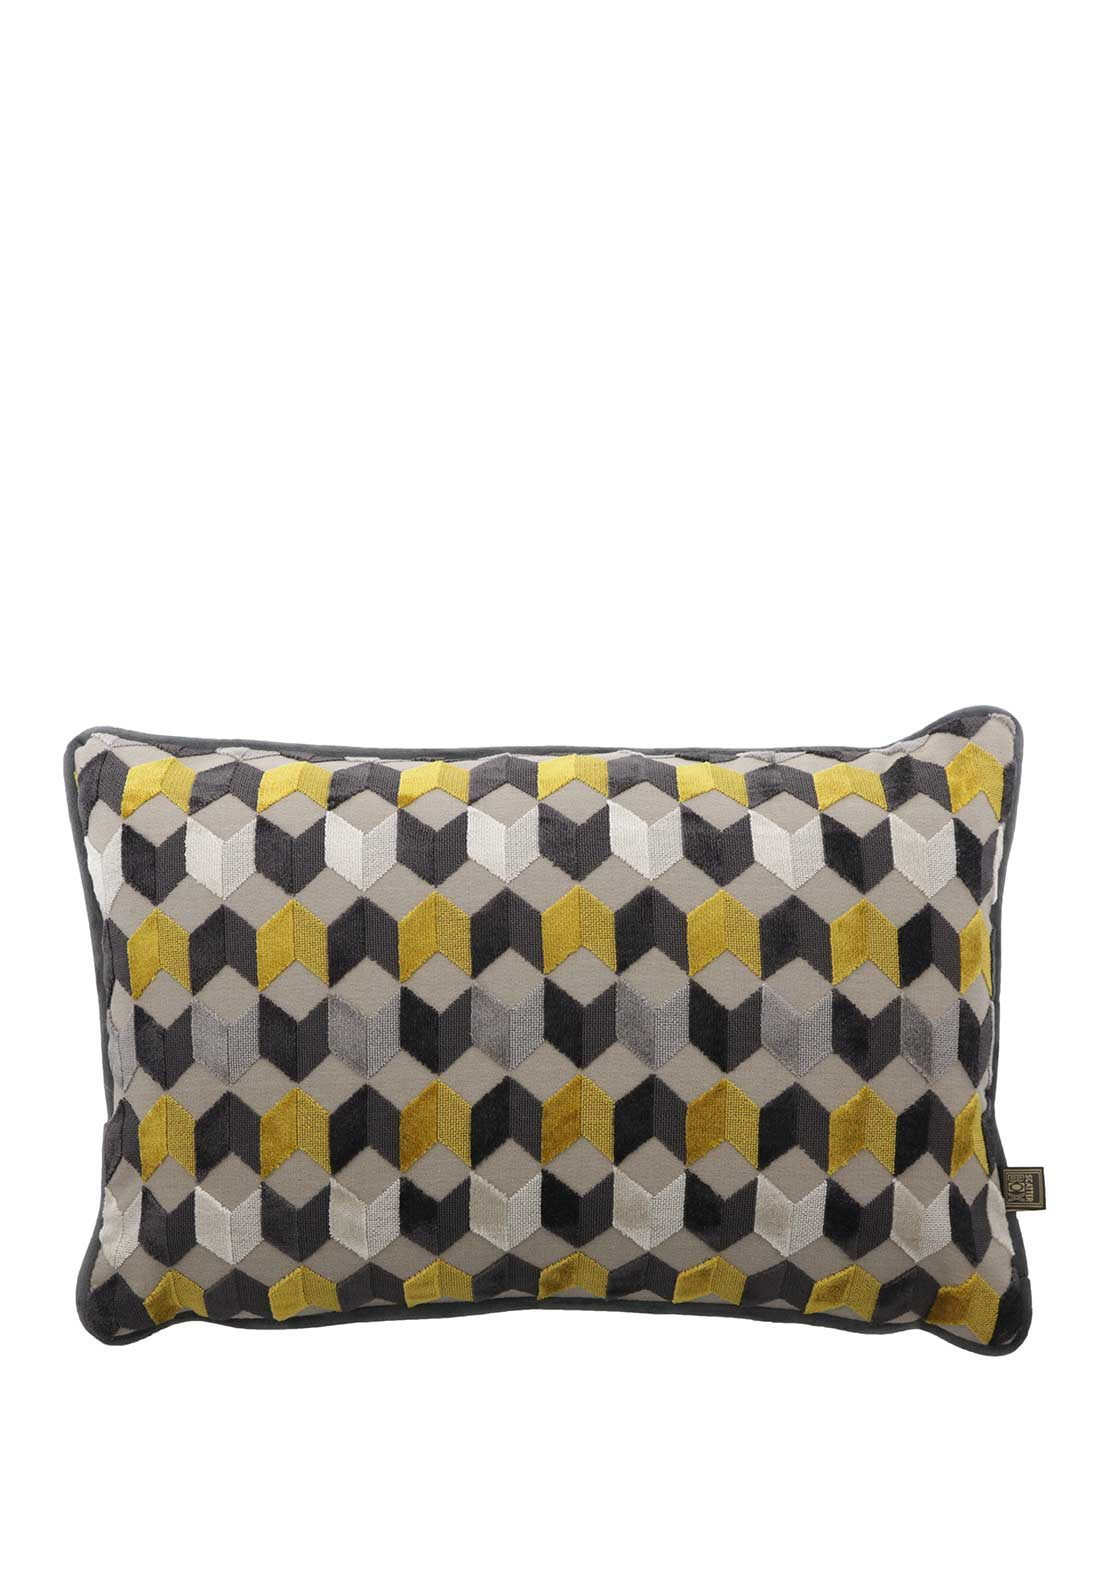 Scatterbox Kingsley Velour Cushion Grey & Saffron 35 x 50cm